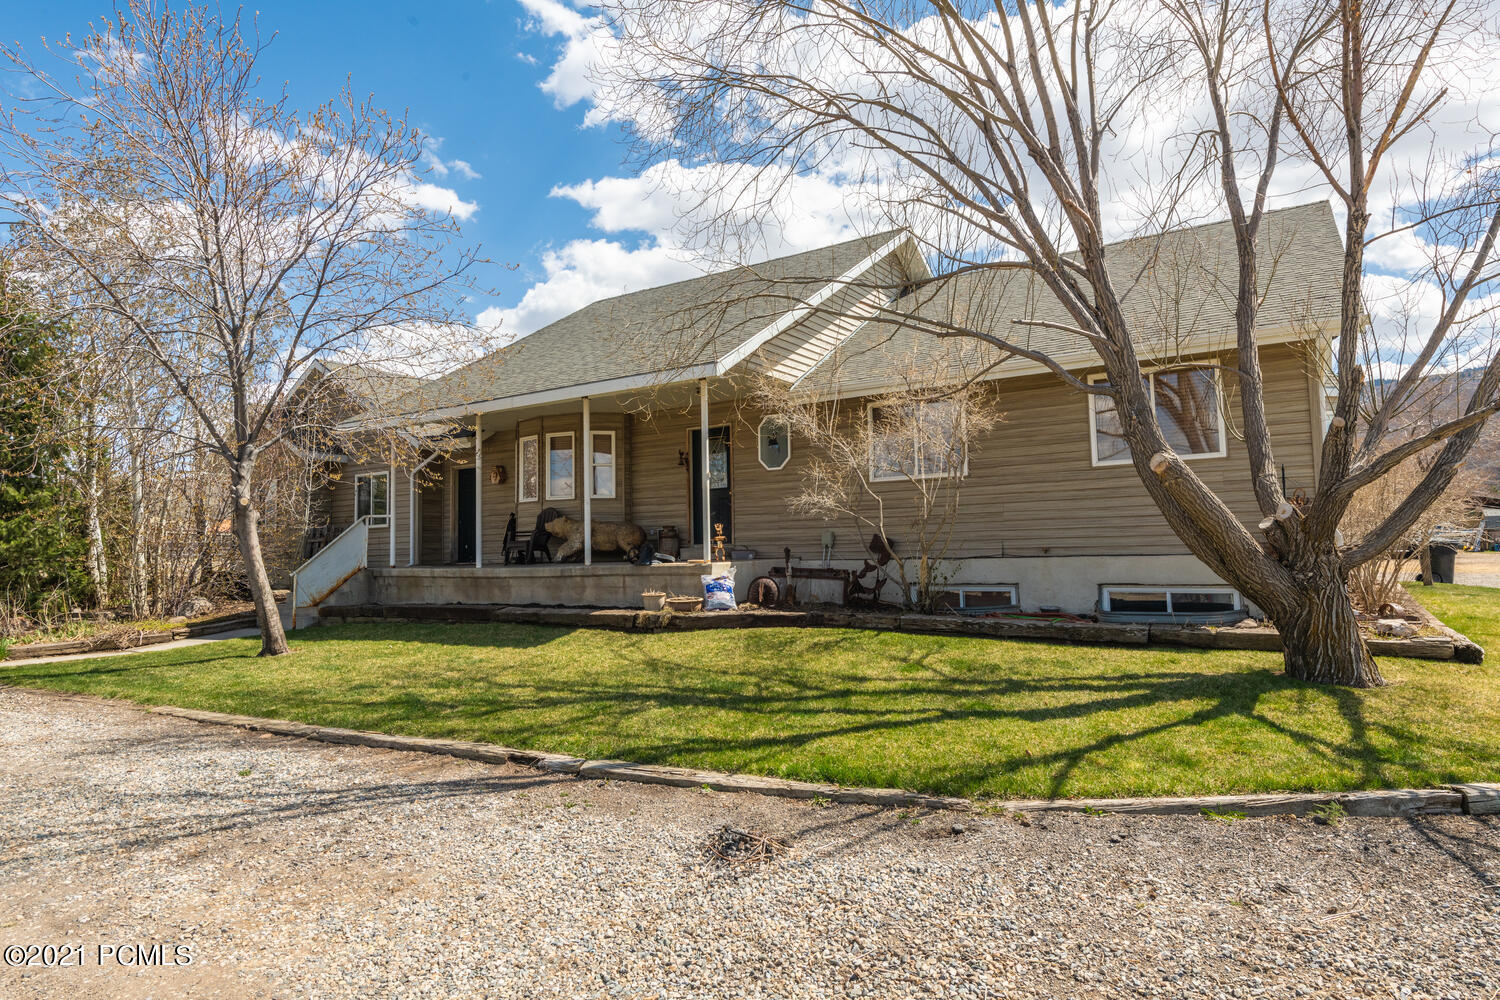 3200 Hwy 40, Heber City, Utah 84032, 6 Bedrooms Bedrooms, ,3 BathroomsBathrooms,Single Family,For Sale,Hwy 40,12101636